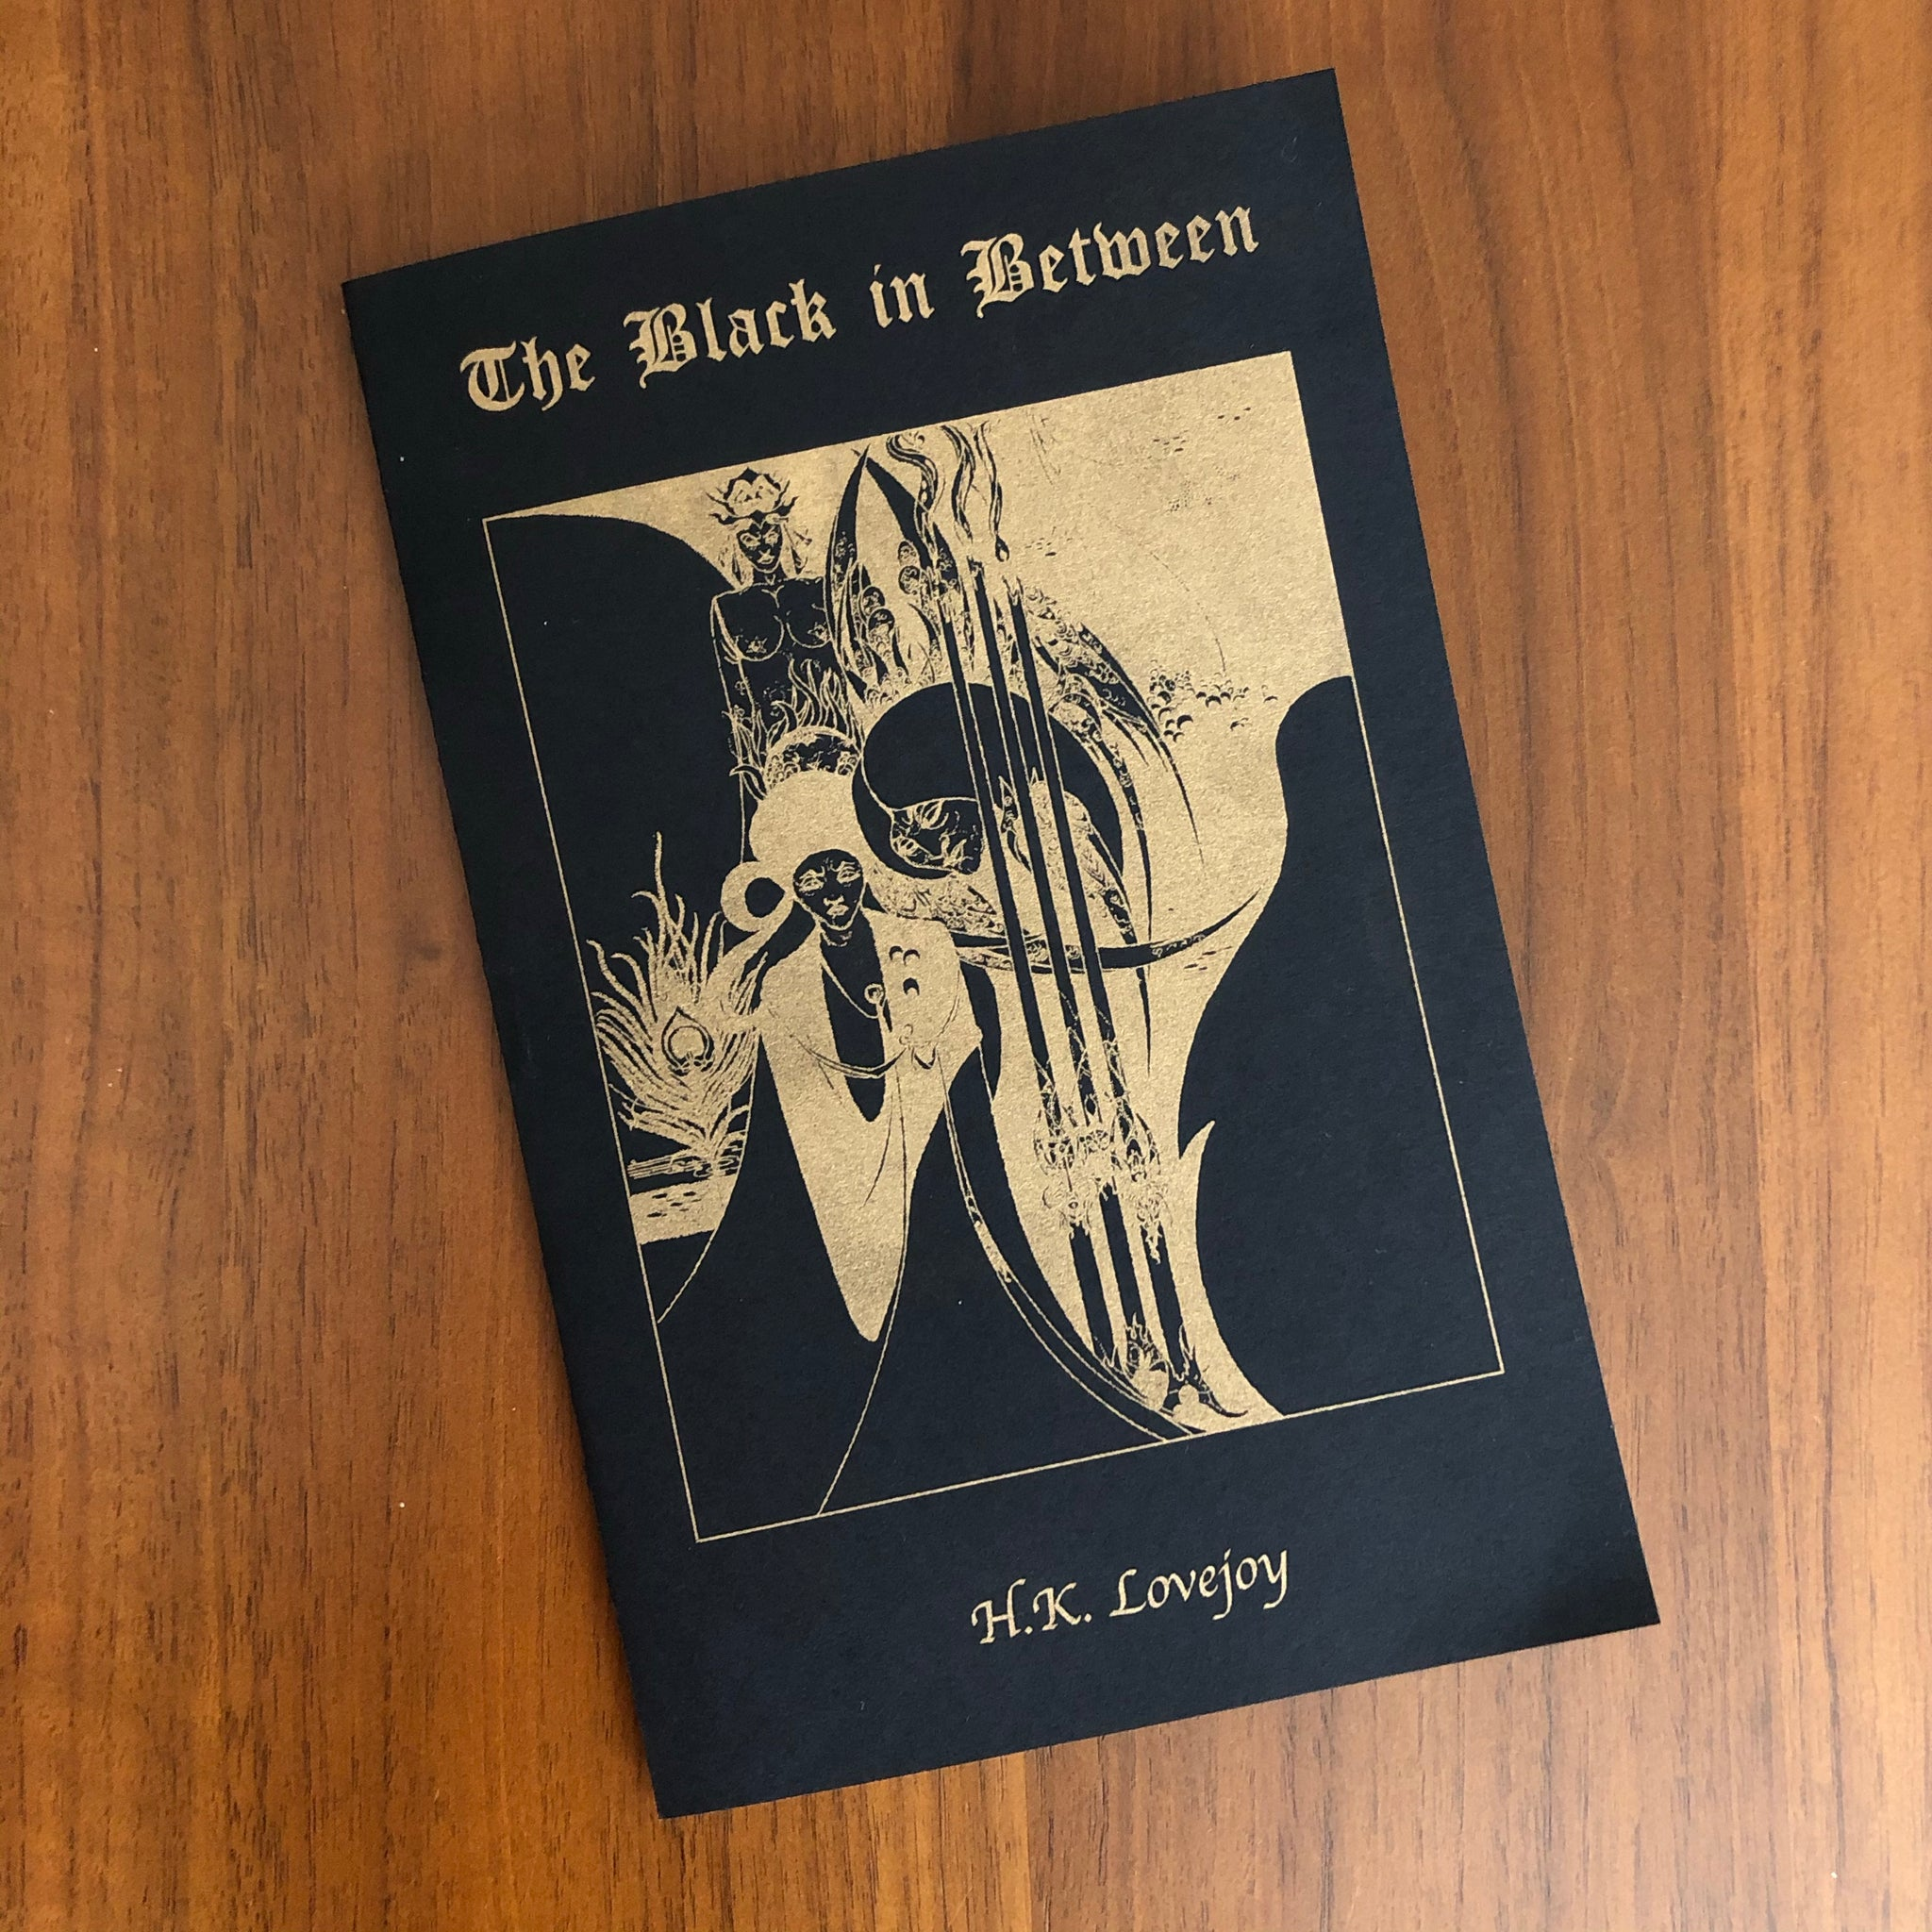 The Black in Between by H.K Lovejoy